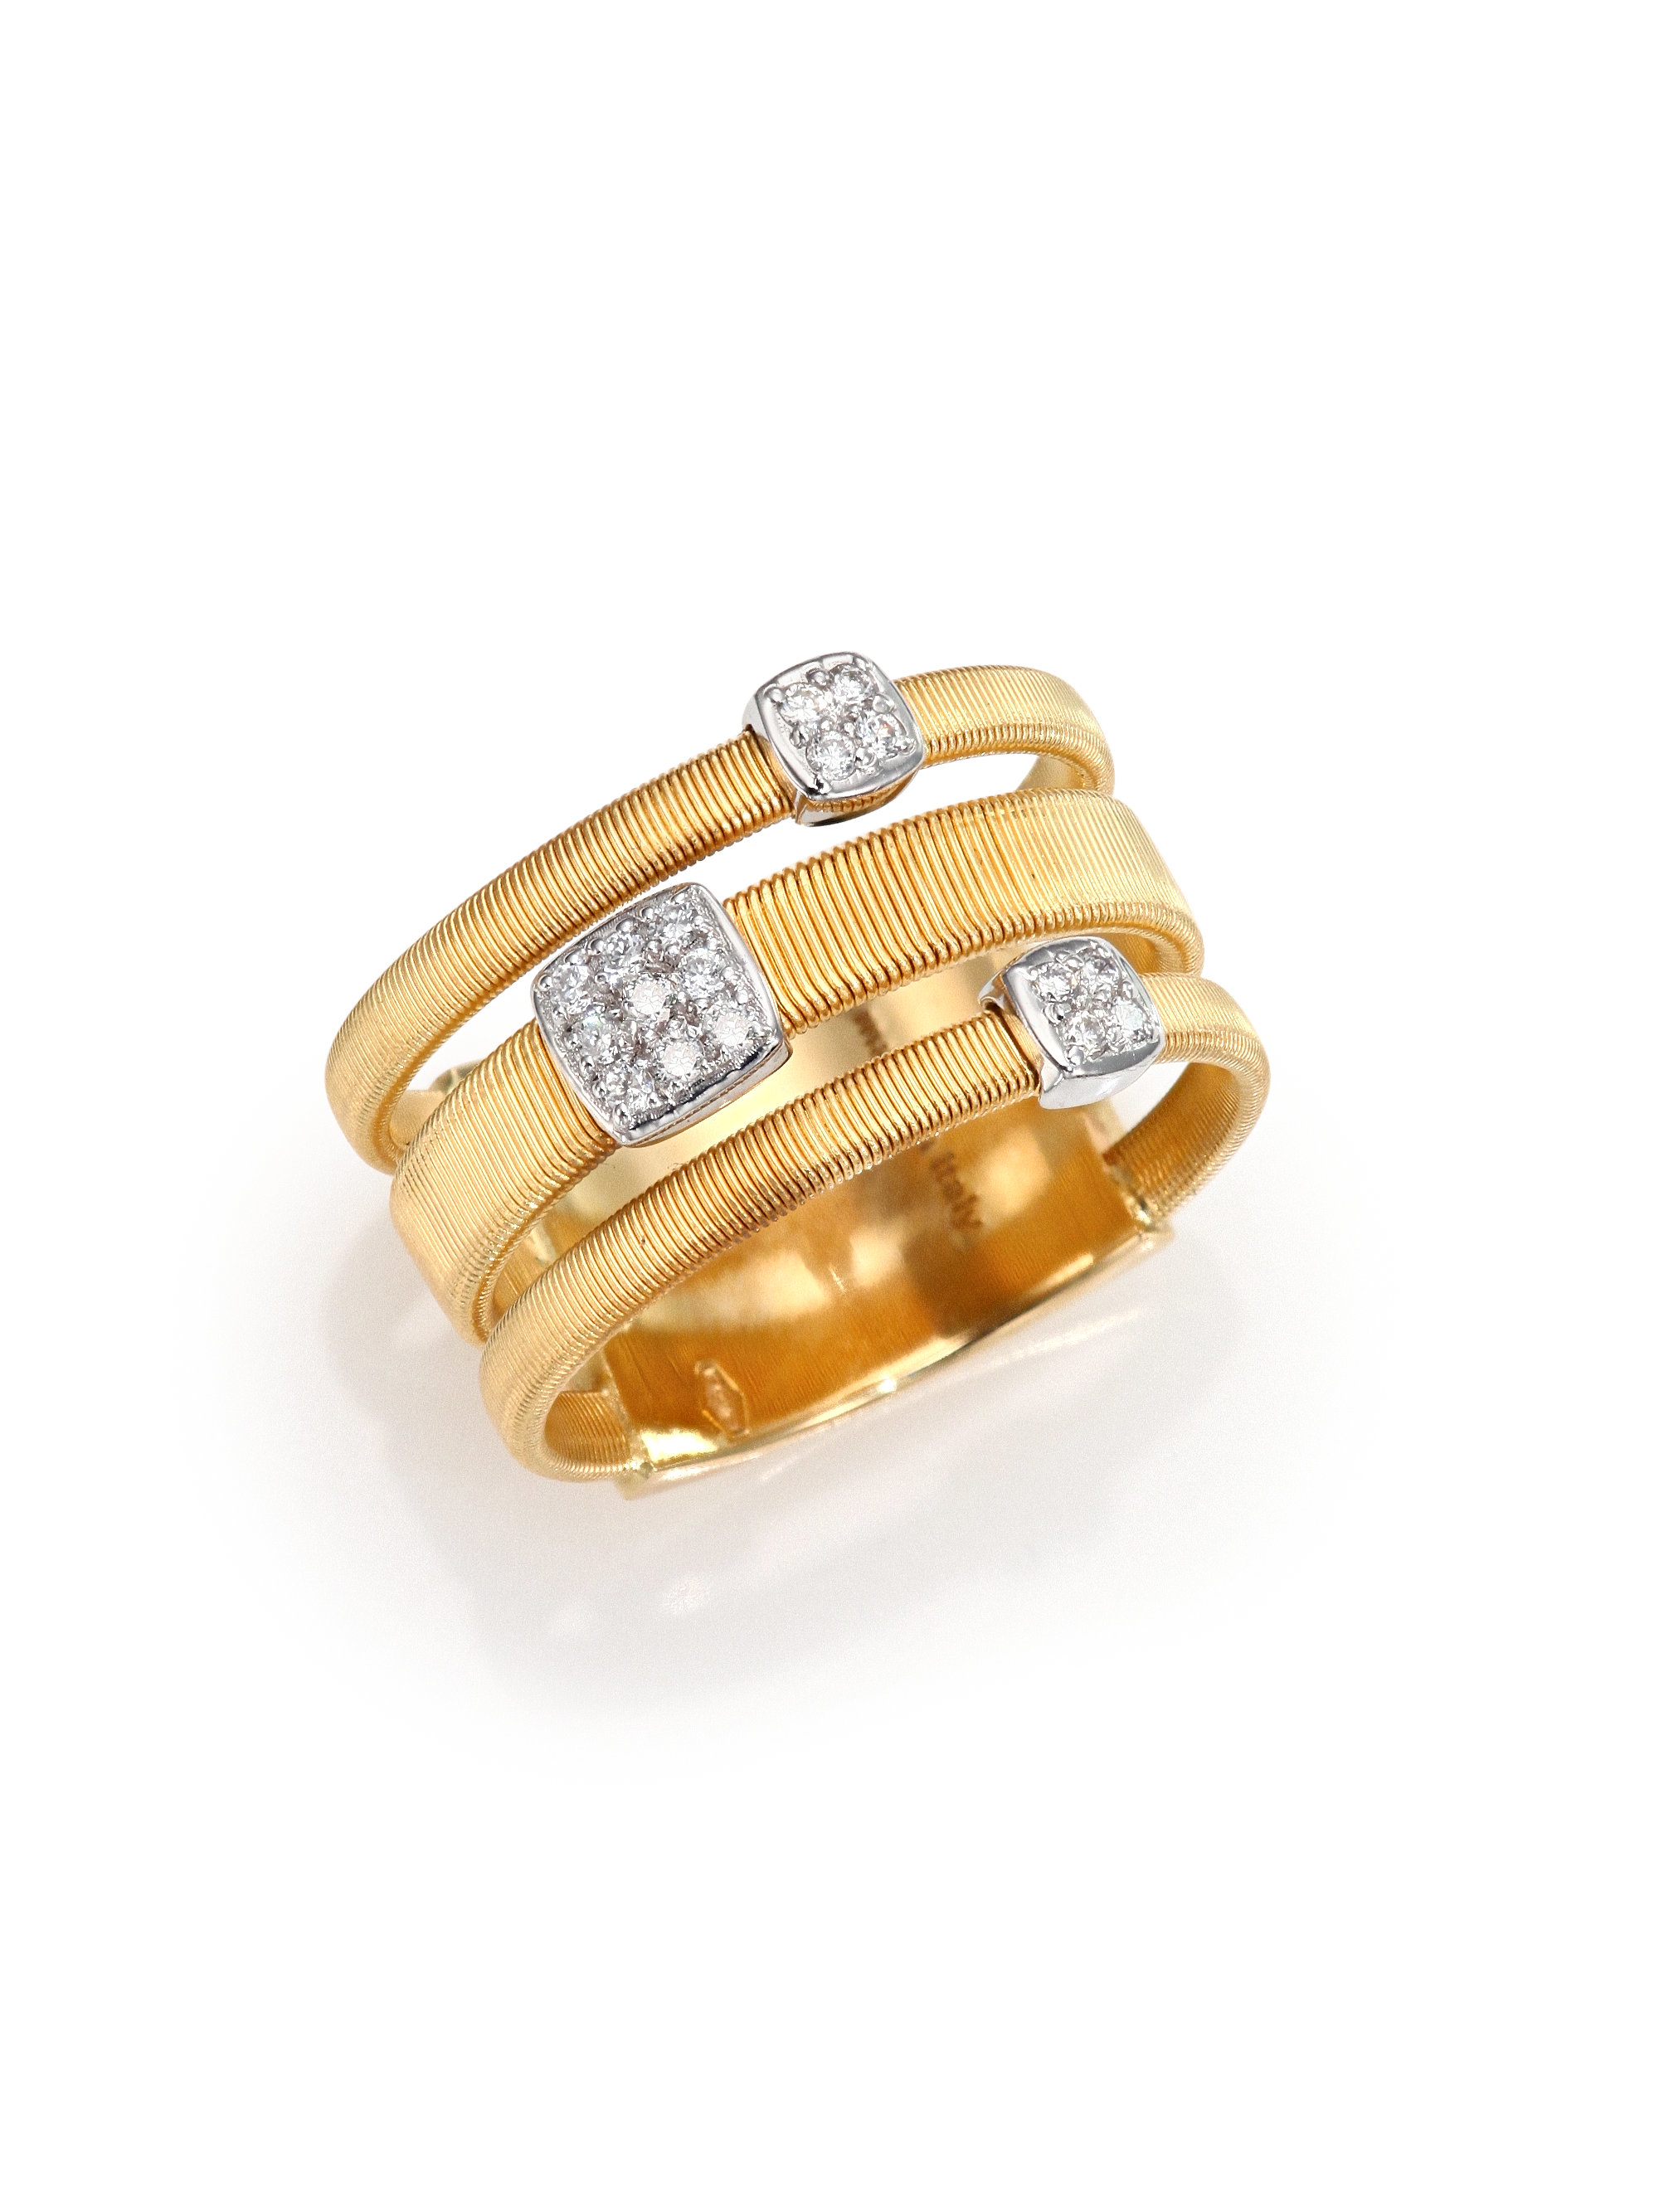 Marco Bicego Masai Ring with Diamonds in 18K Yellow Gold IB5kX